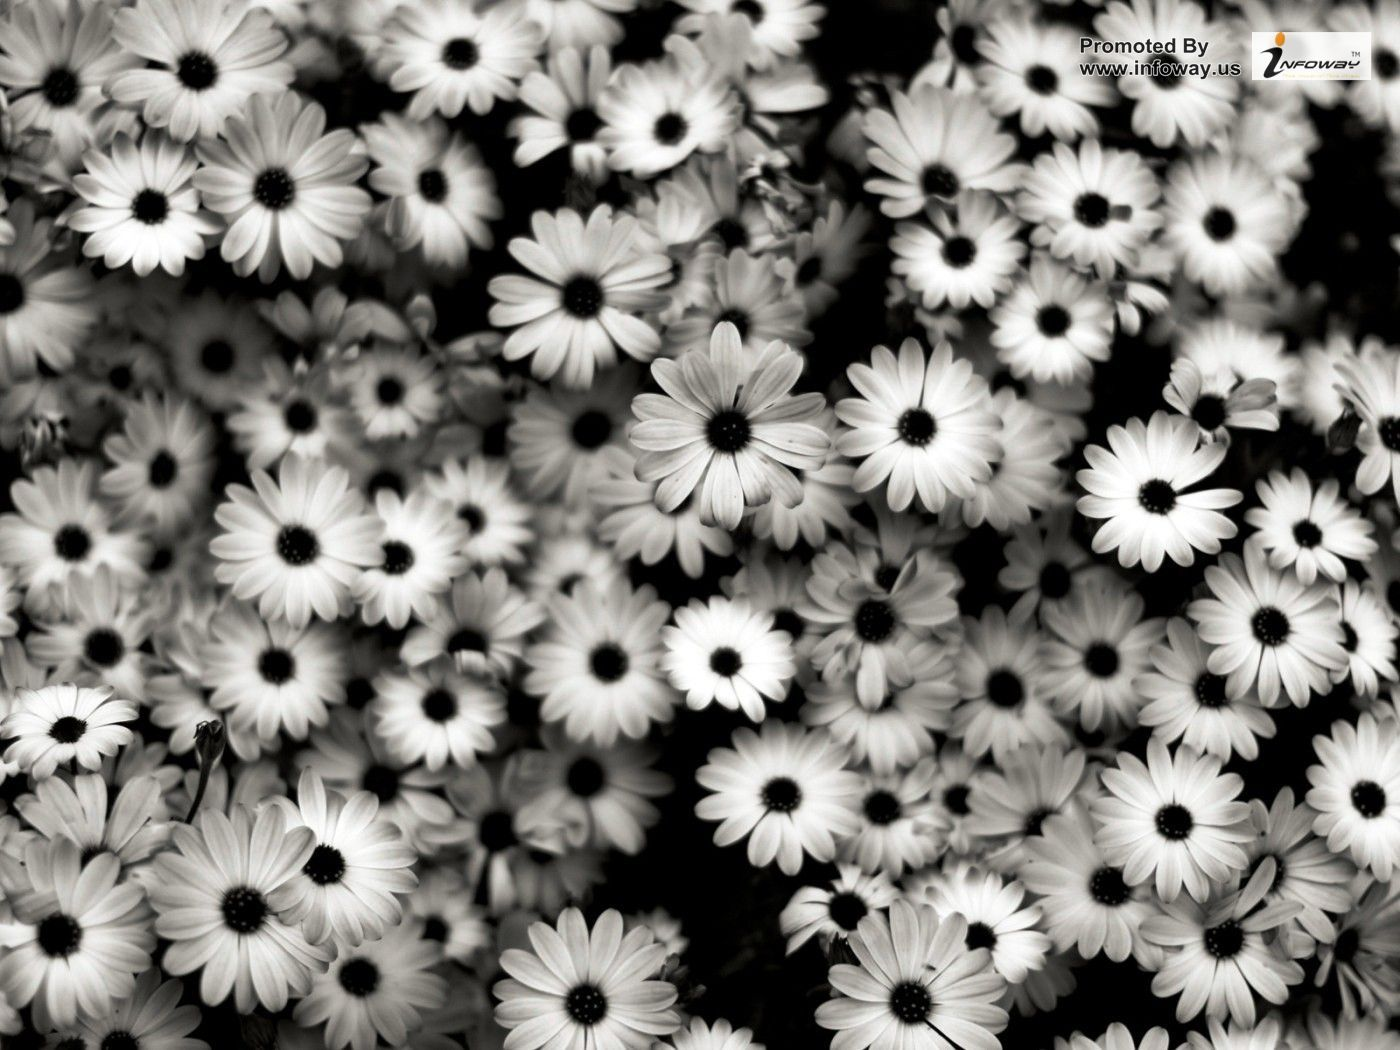 1400x1050 Free download Nature Flowers Black And White Flowers ...